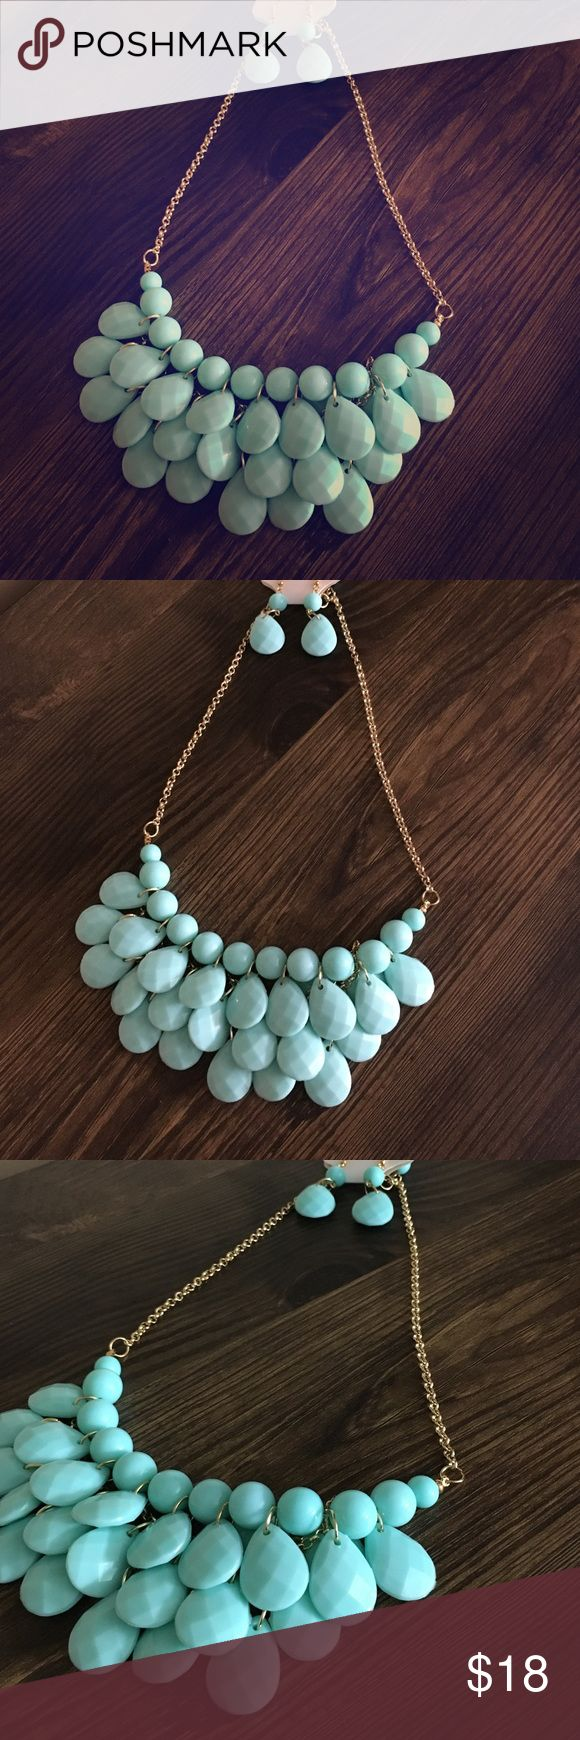 """Mint & Goldtone Boho Chic Layered Bib Necklace Set This necklace set is cuter in person!! It features multiple layers of stones to create a 3"""" long bib necklace area. Comes with simple, matching earrings. Gold Tone hardware and made of mixed metals. ✅✅ Bundle a few of our items and save!! NeatandNice Jewelry Necklaces"""